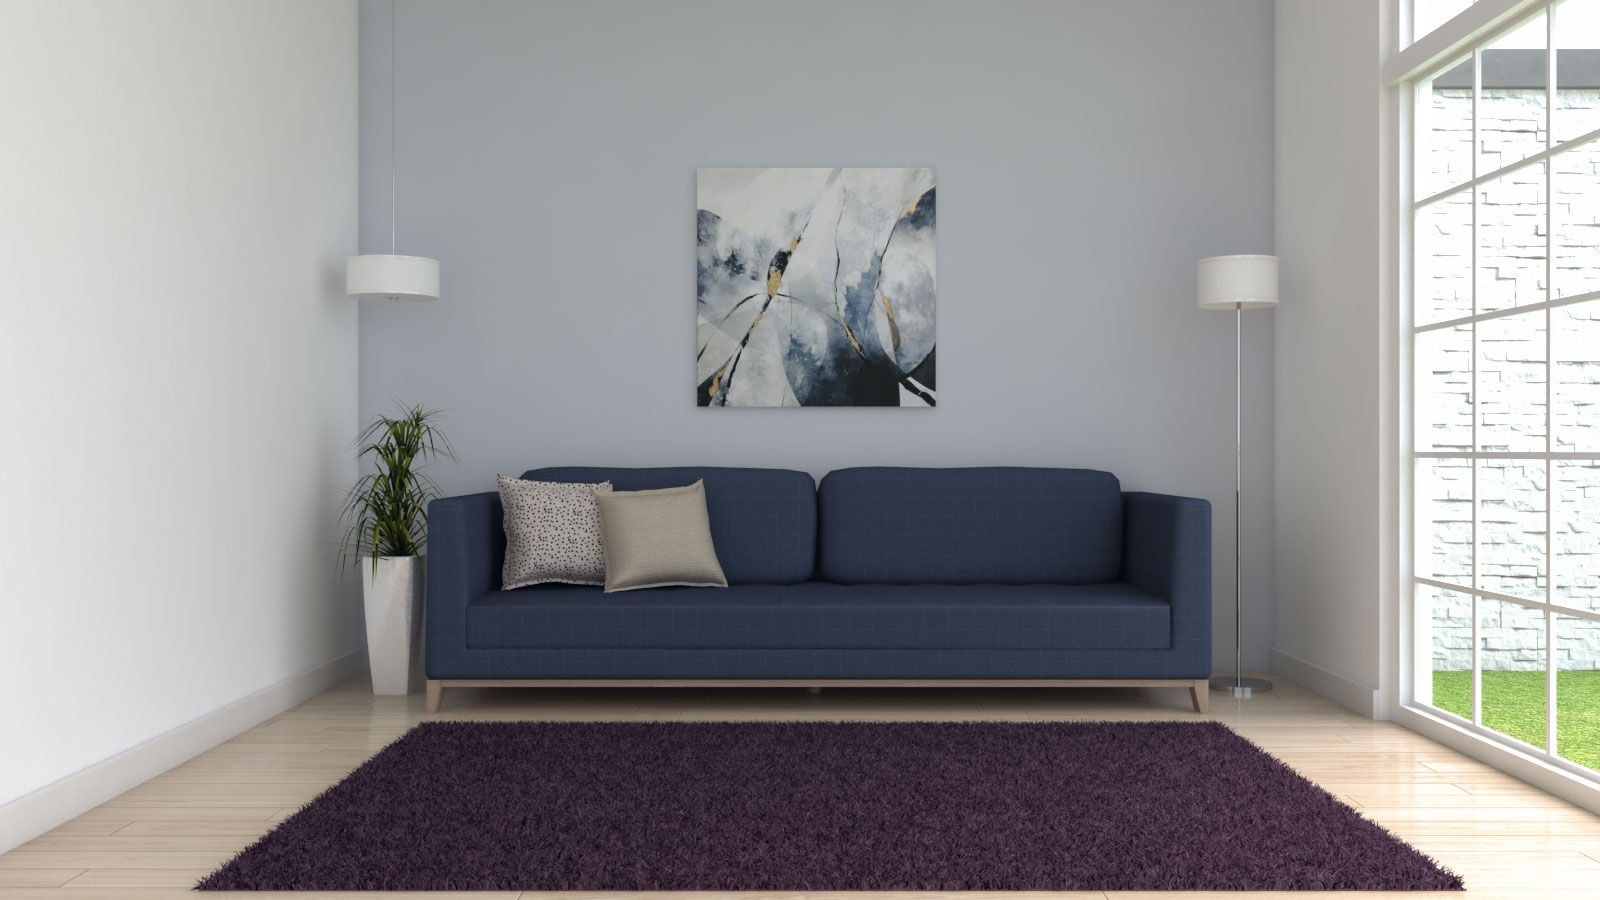 Purple area rug with blue couch